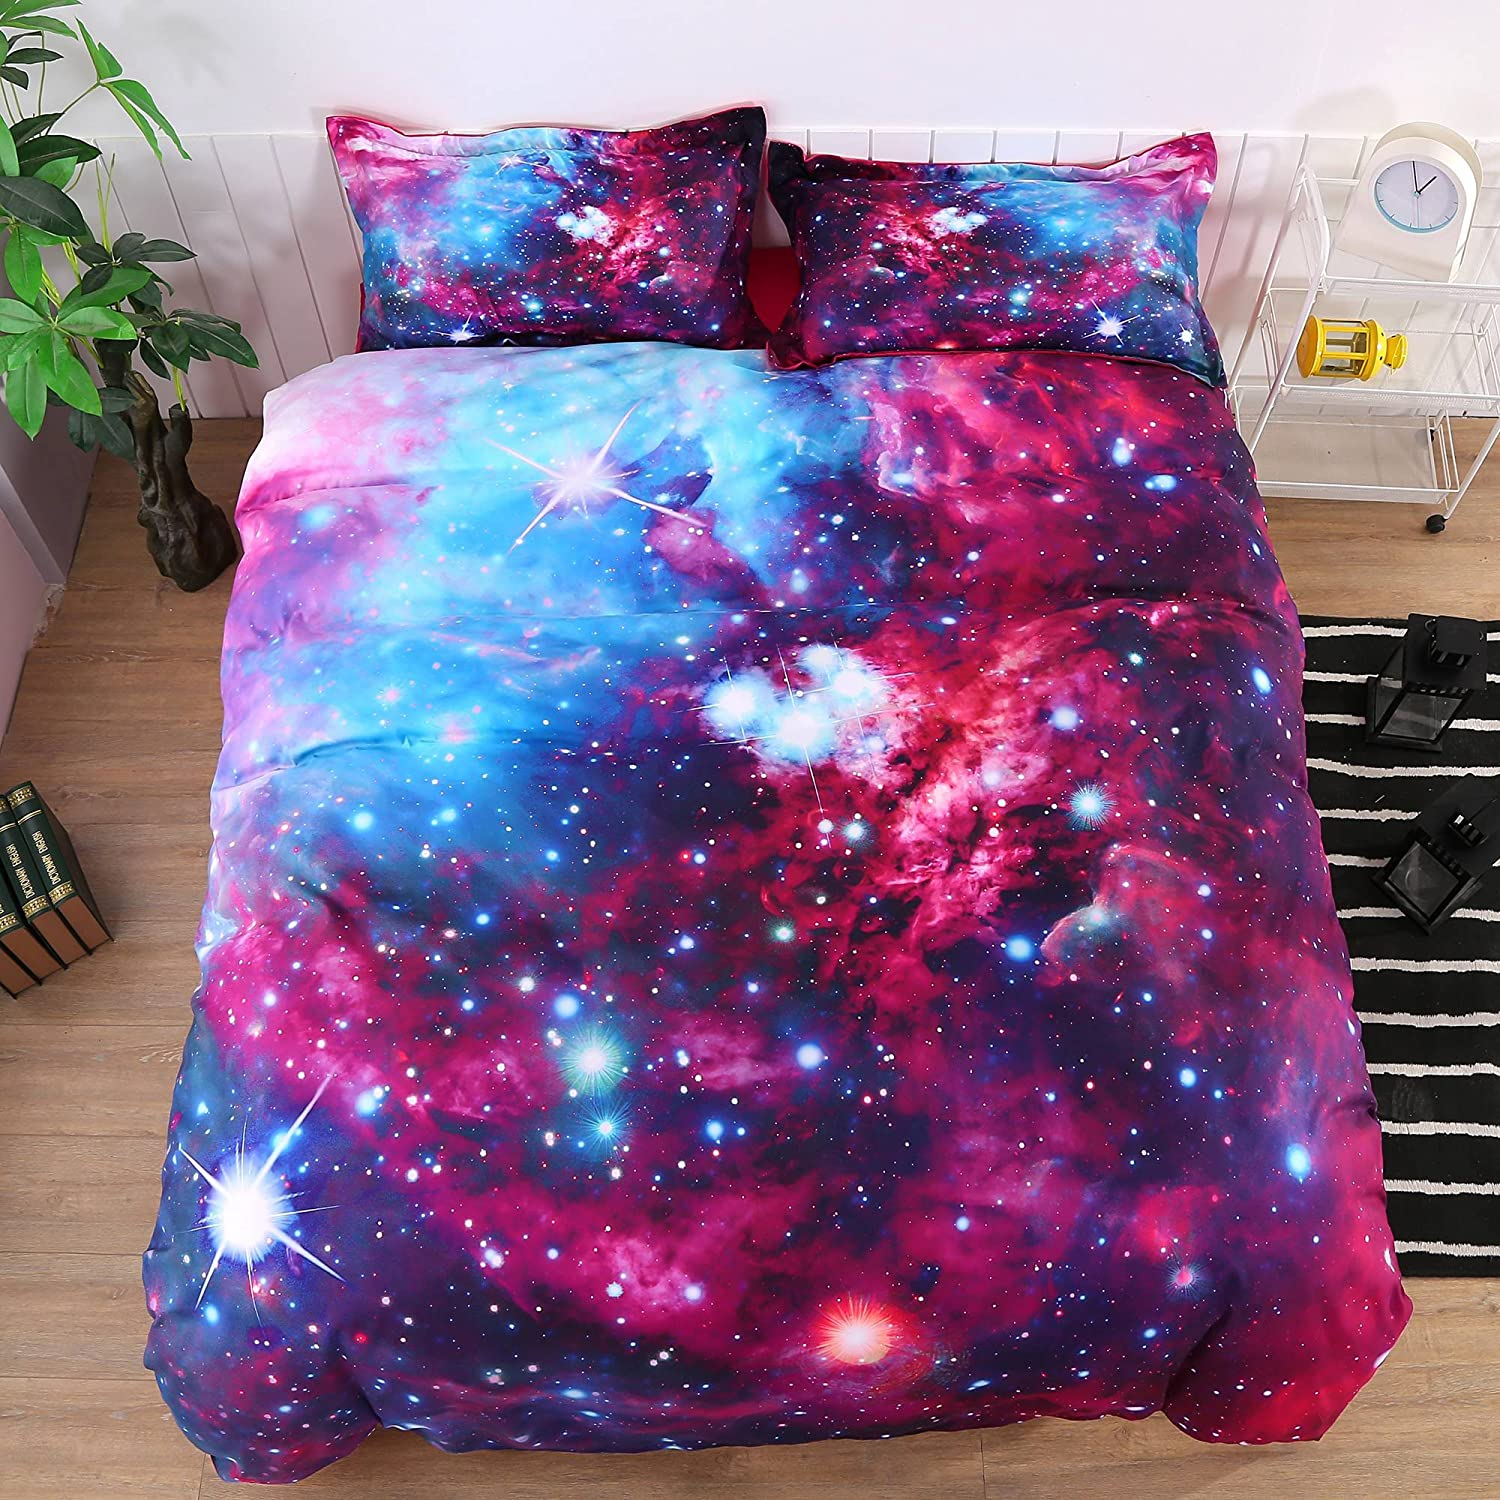 Ammybeddings 4 PCs Queen Size Purple Galaxy Bedding Universe Outer Space Duvet Cover 3D Charming Galaxy Bedding Sets Soft Stylish Home Decor Duvet Cover Set (No Comforter&NO Fitted Sheet)